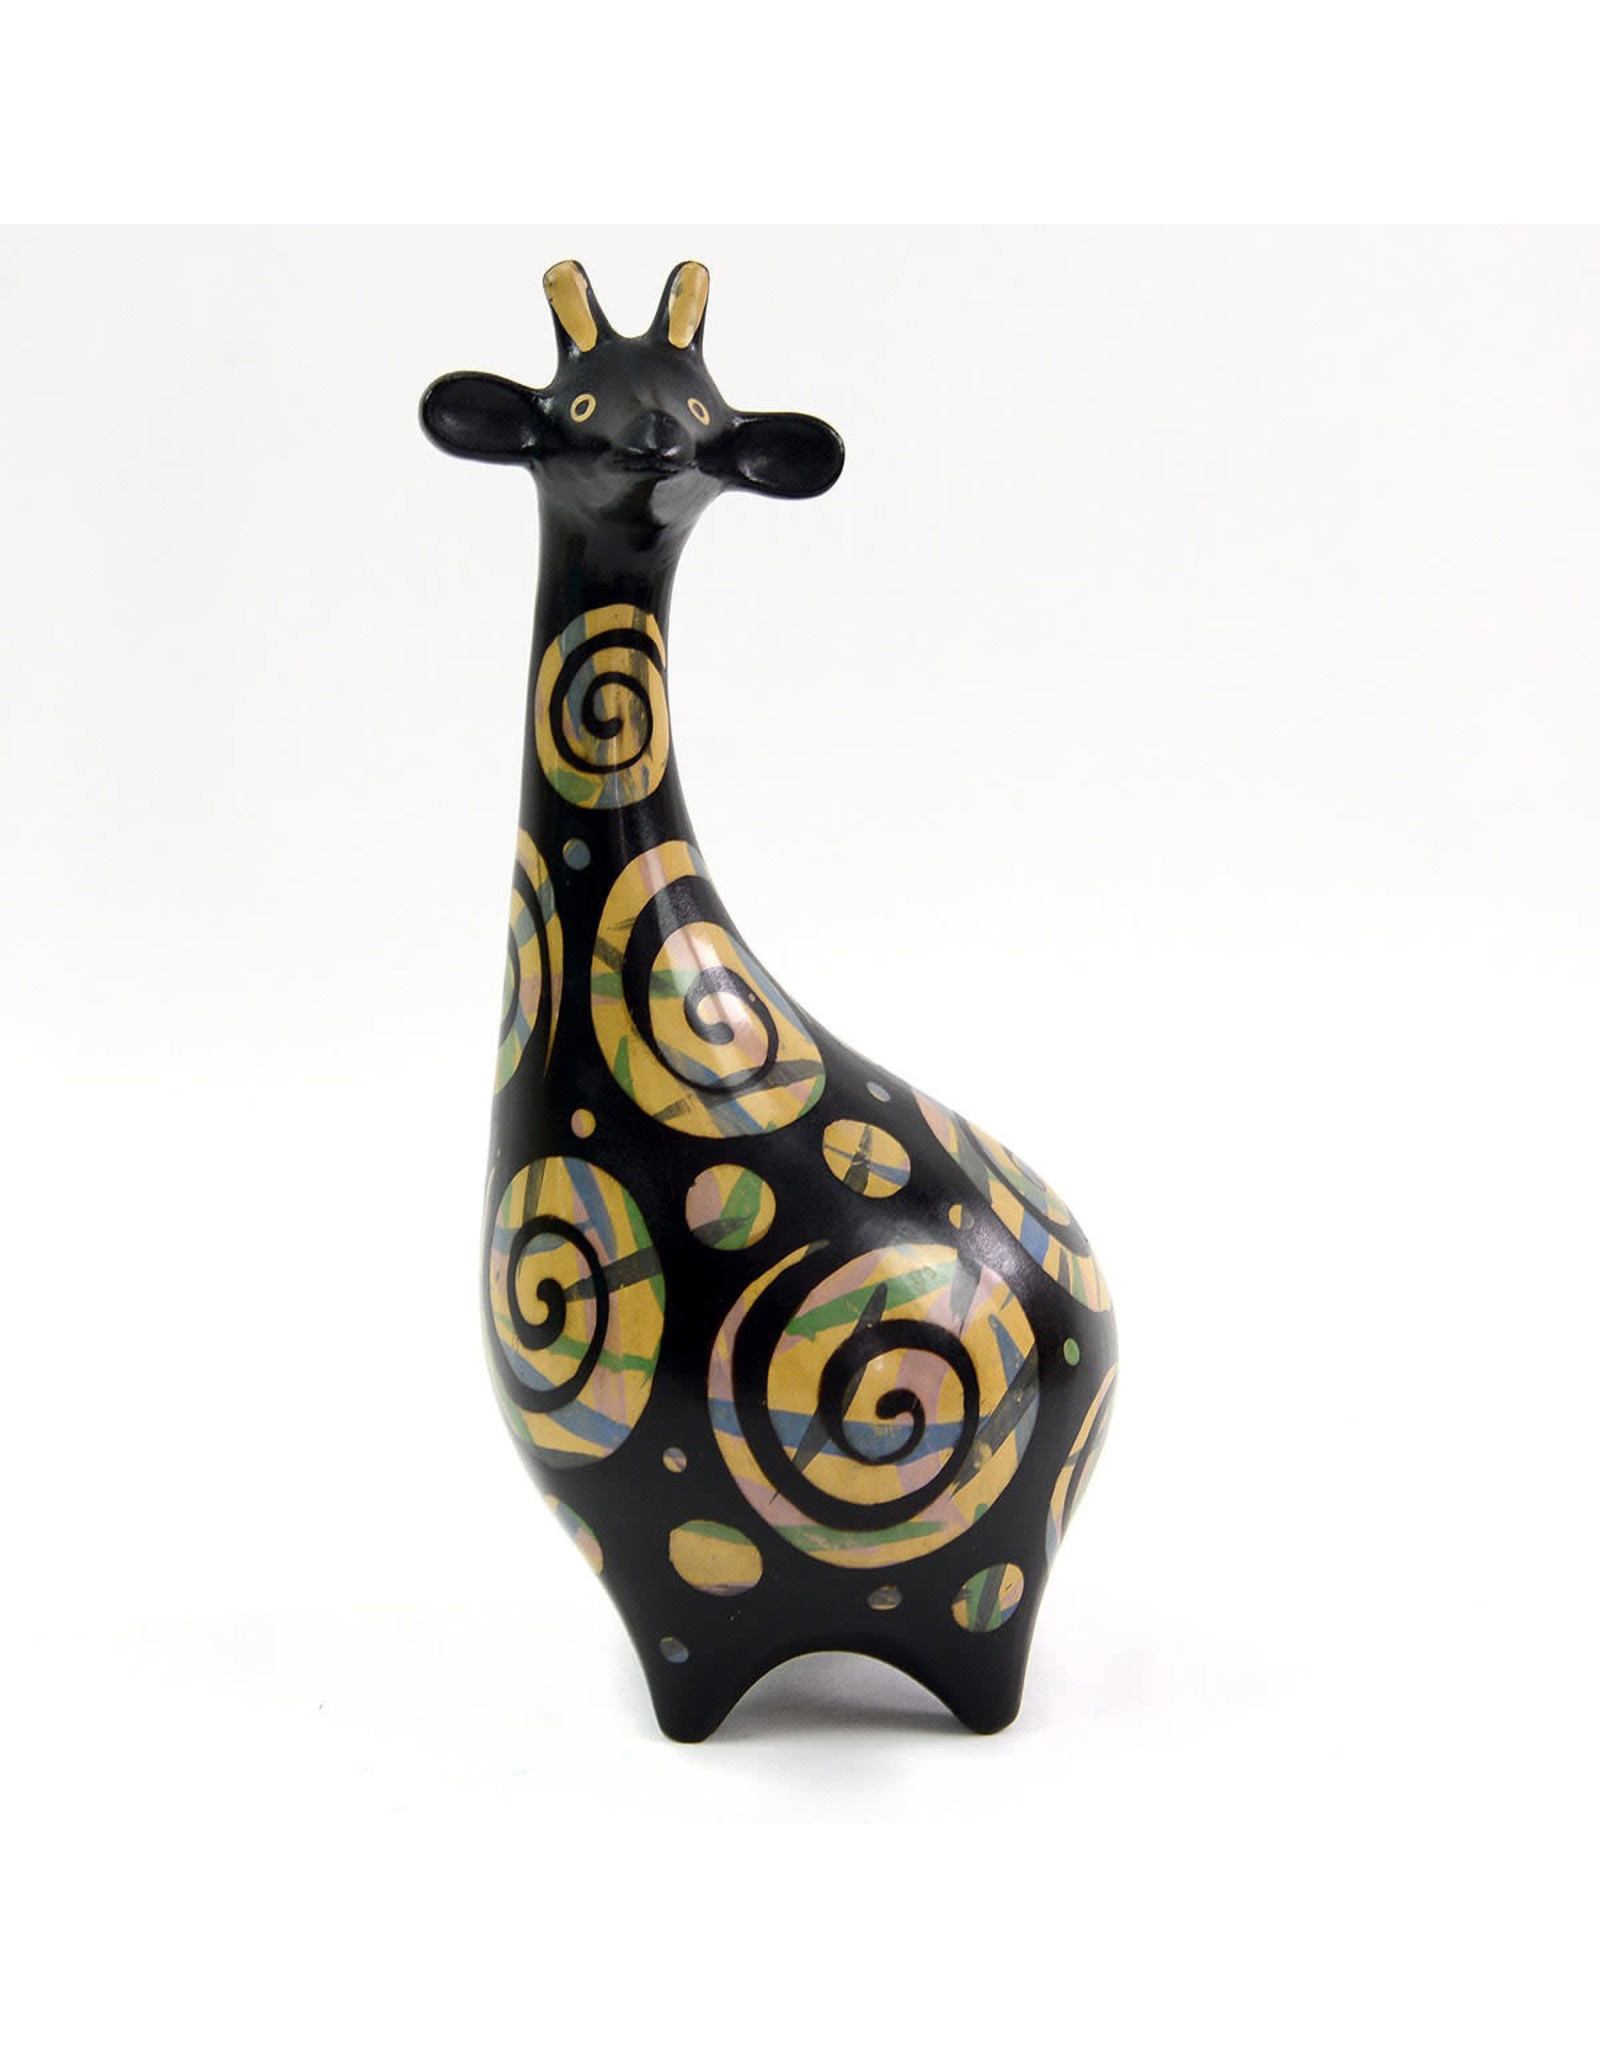 Minga Chulucanas Pottery Animal Sculpture, Peru.